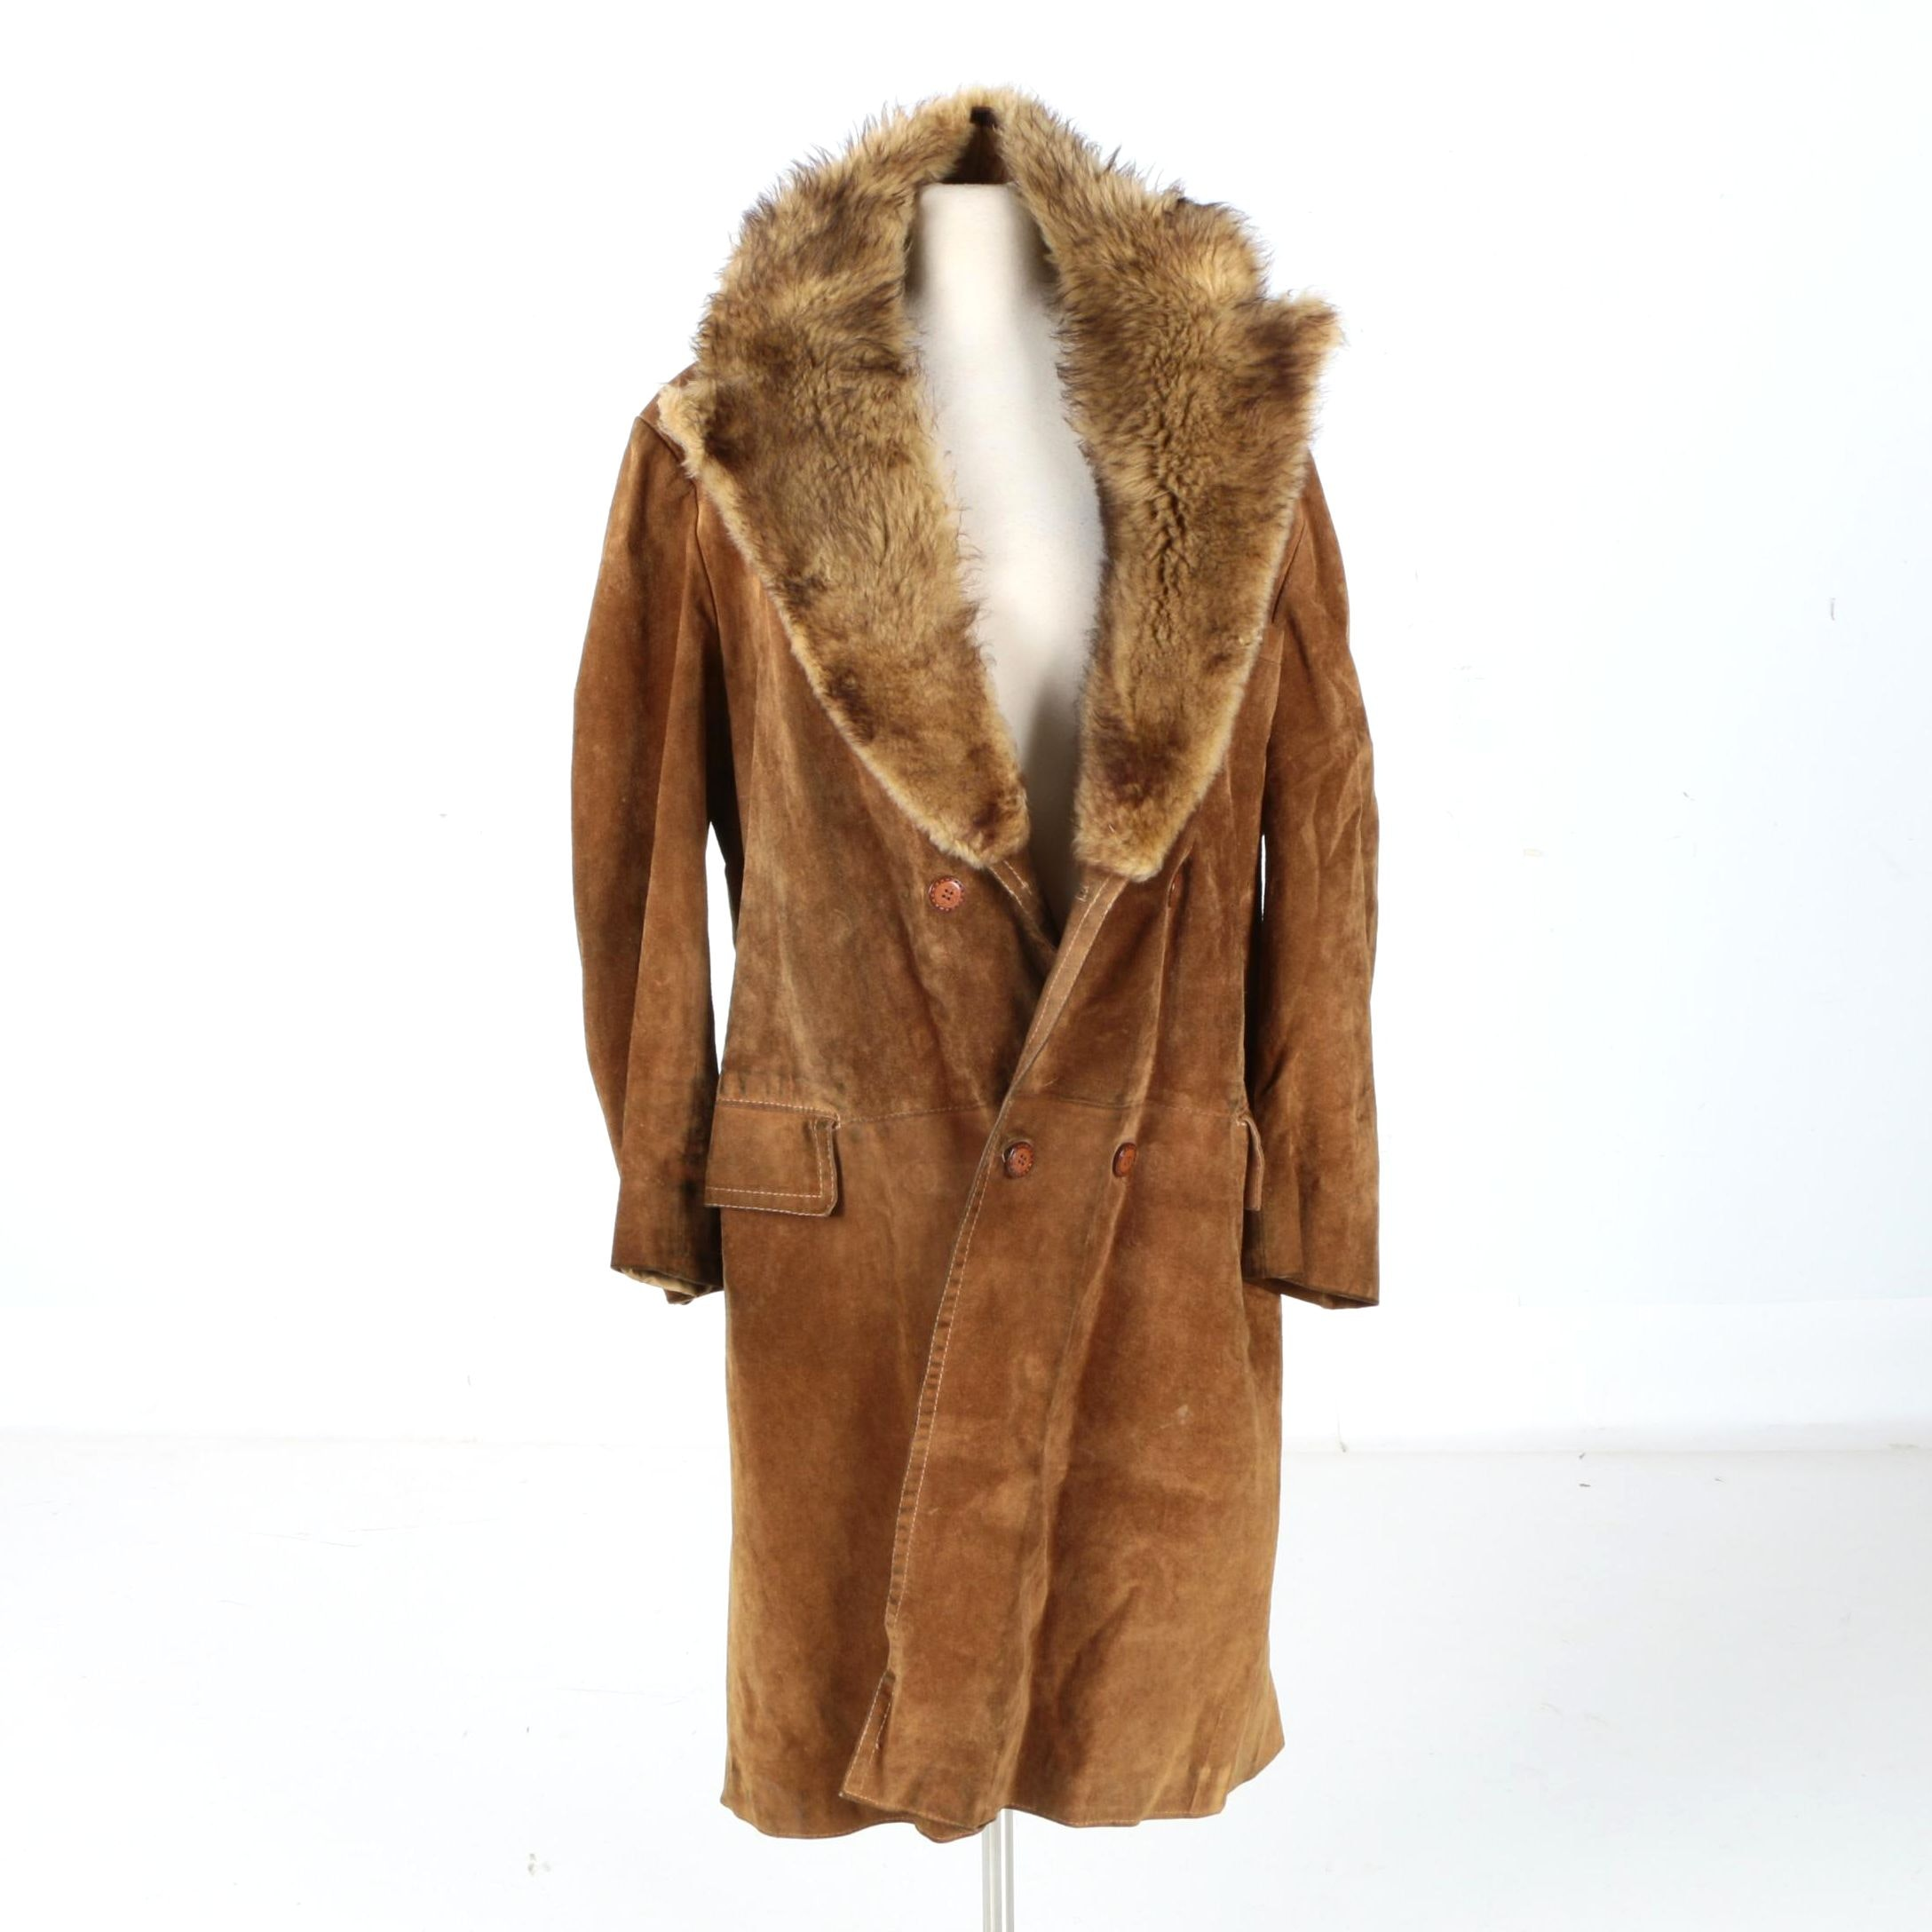 Men's Suede and Fur Coat by Ericson